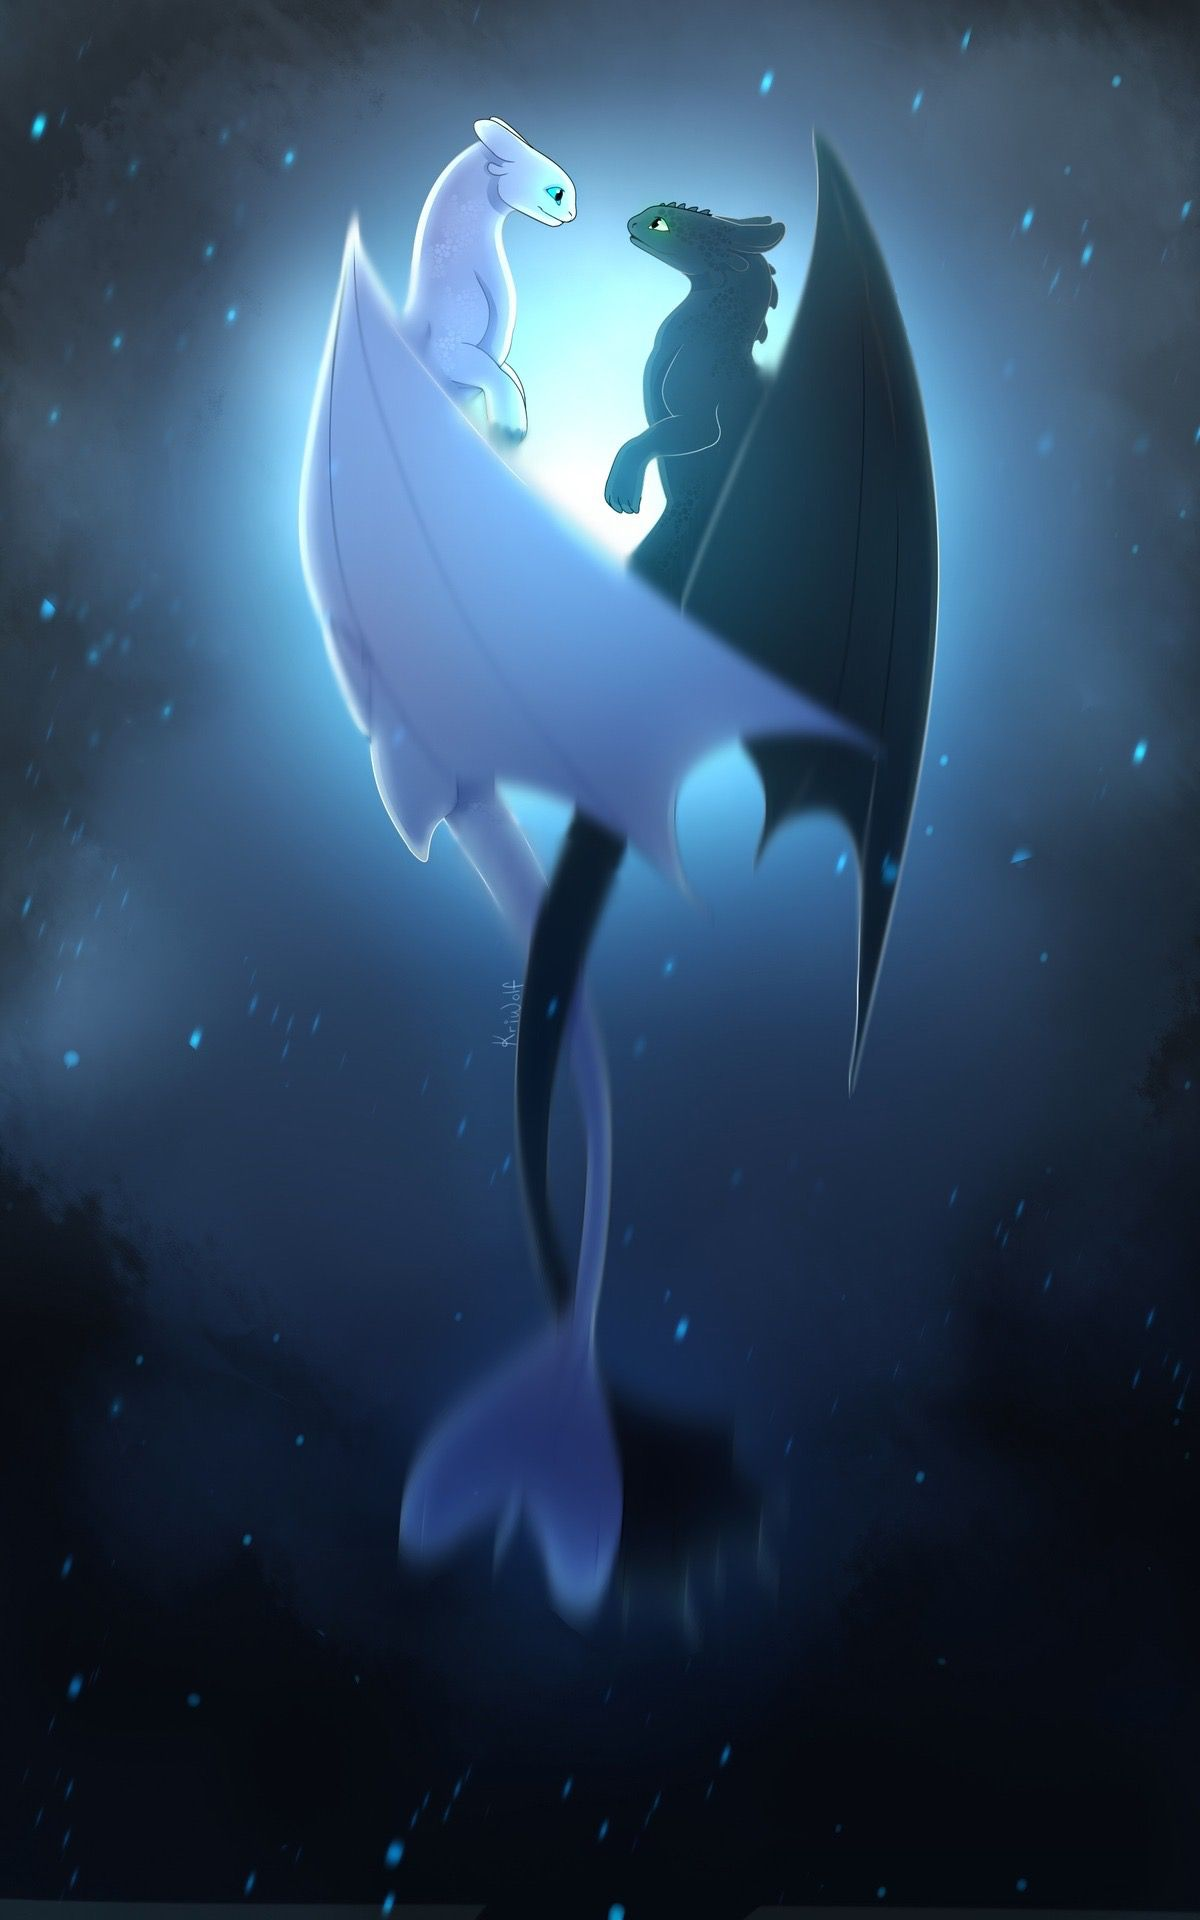 Cute Toothless And Light Fury : toothless, light, Kailie, Butler, Train, Dragon, Dragon,, Wallpaper, Iphone,